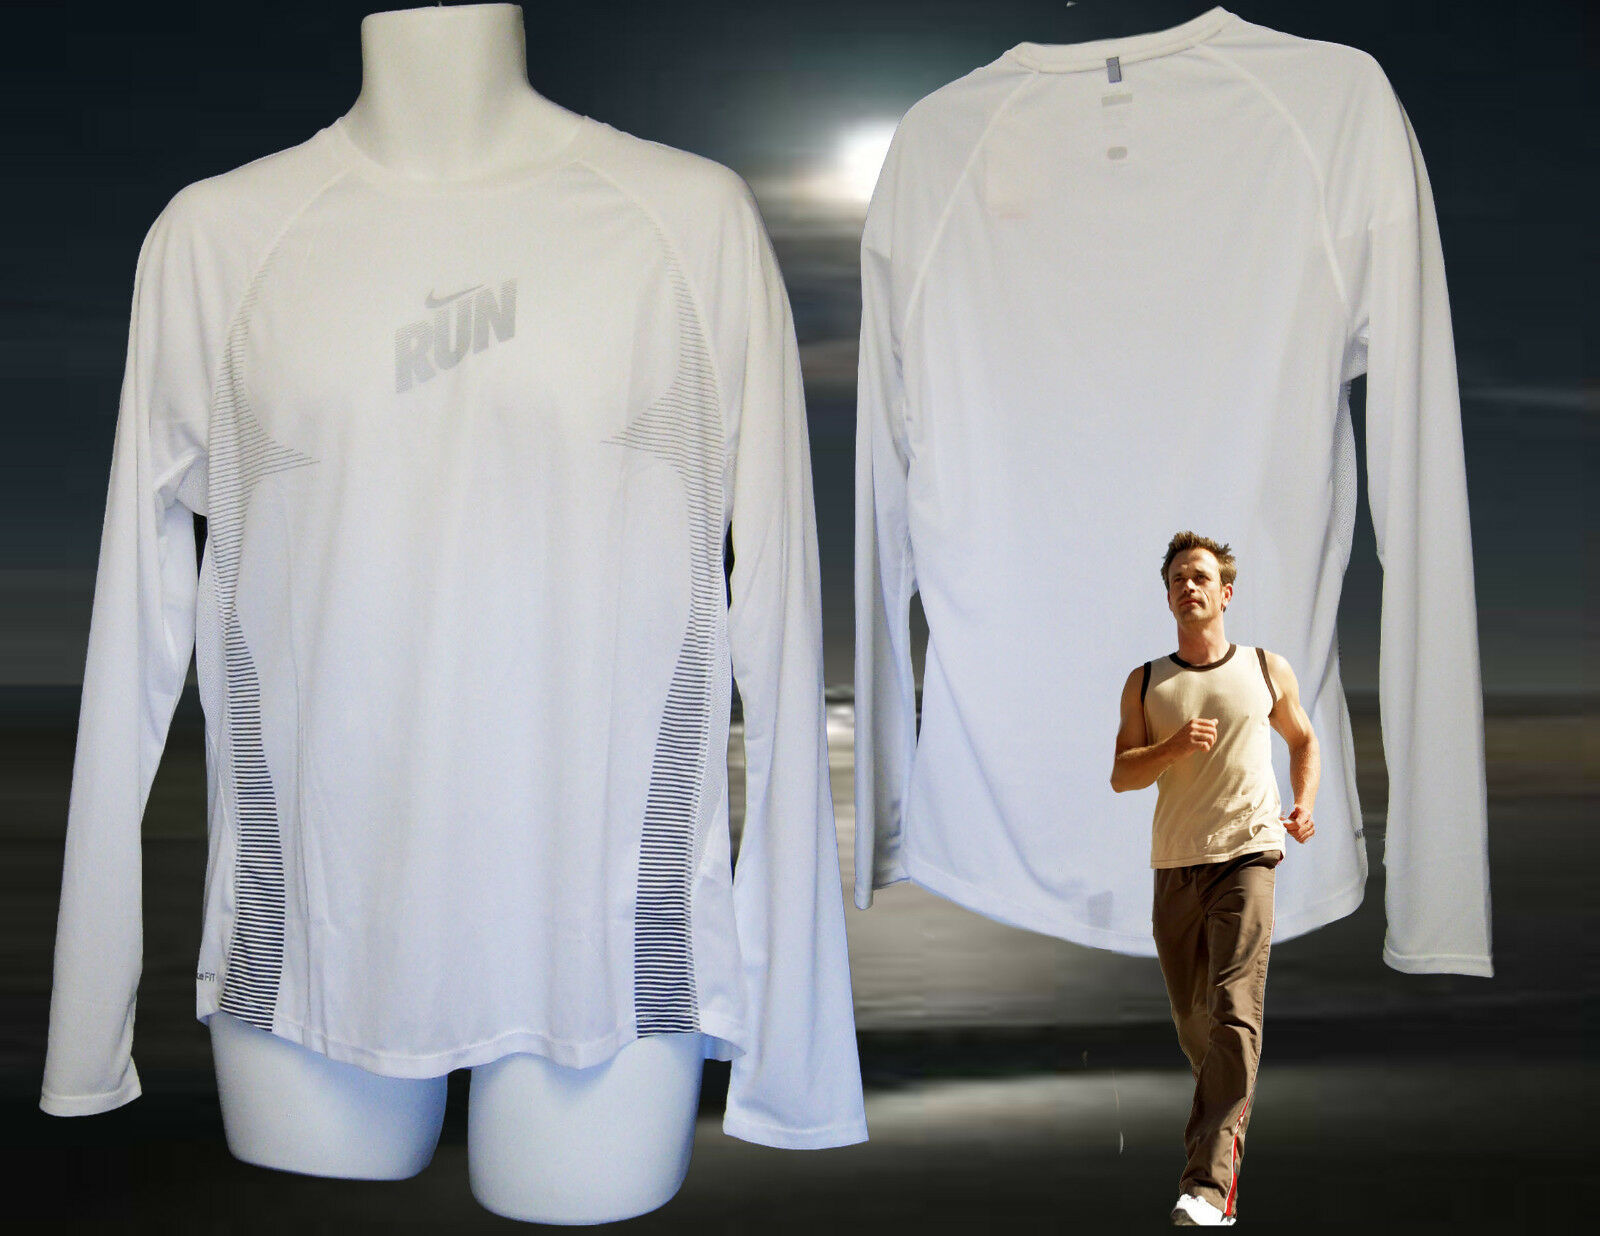 NEW NIKE + Super Lightweight Reflective Ventilated  Running Shirt White XL  new exclusive high-end